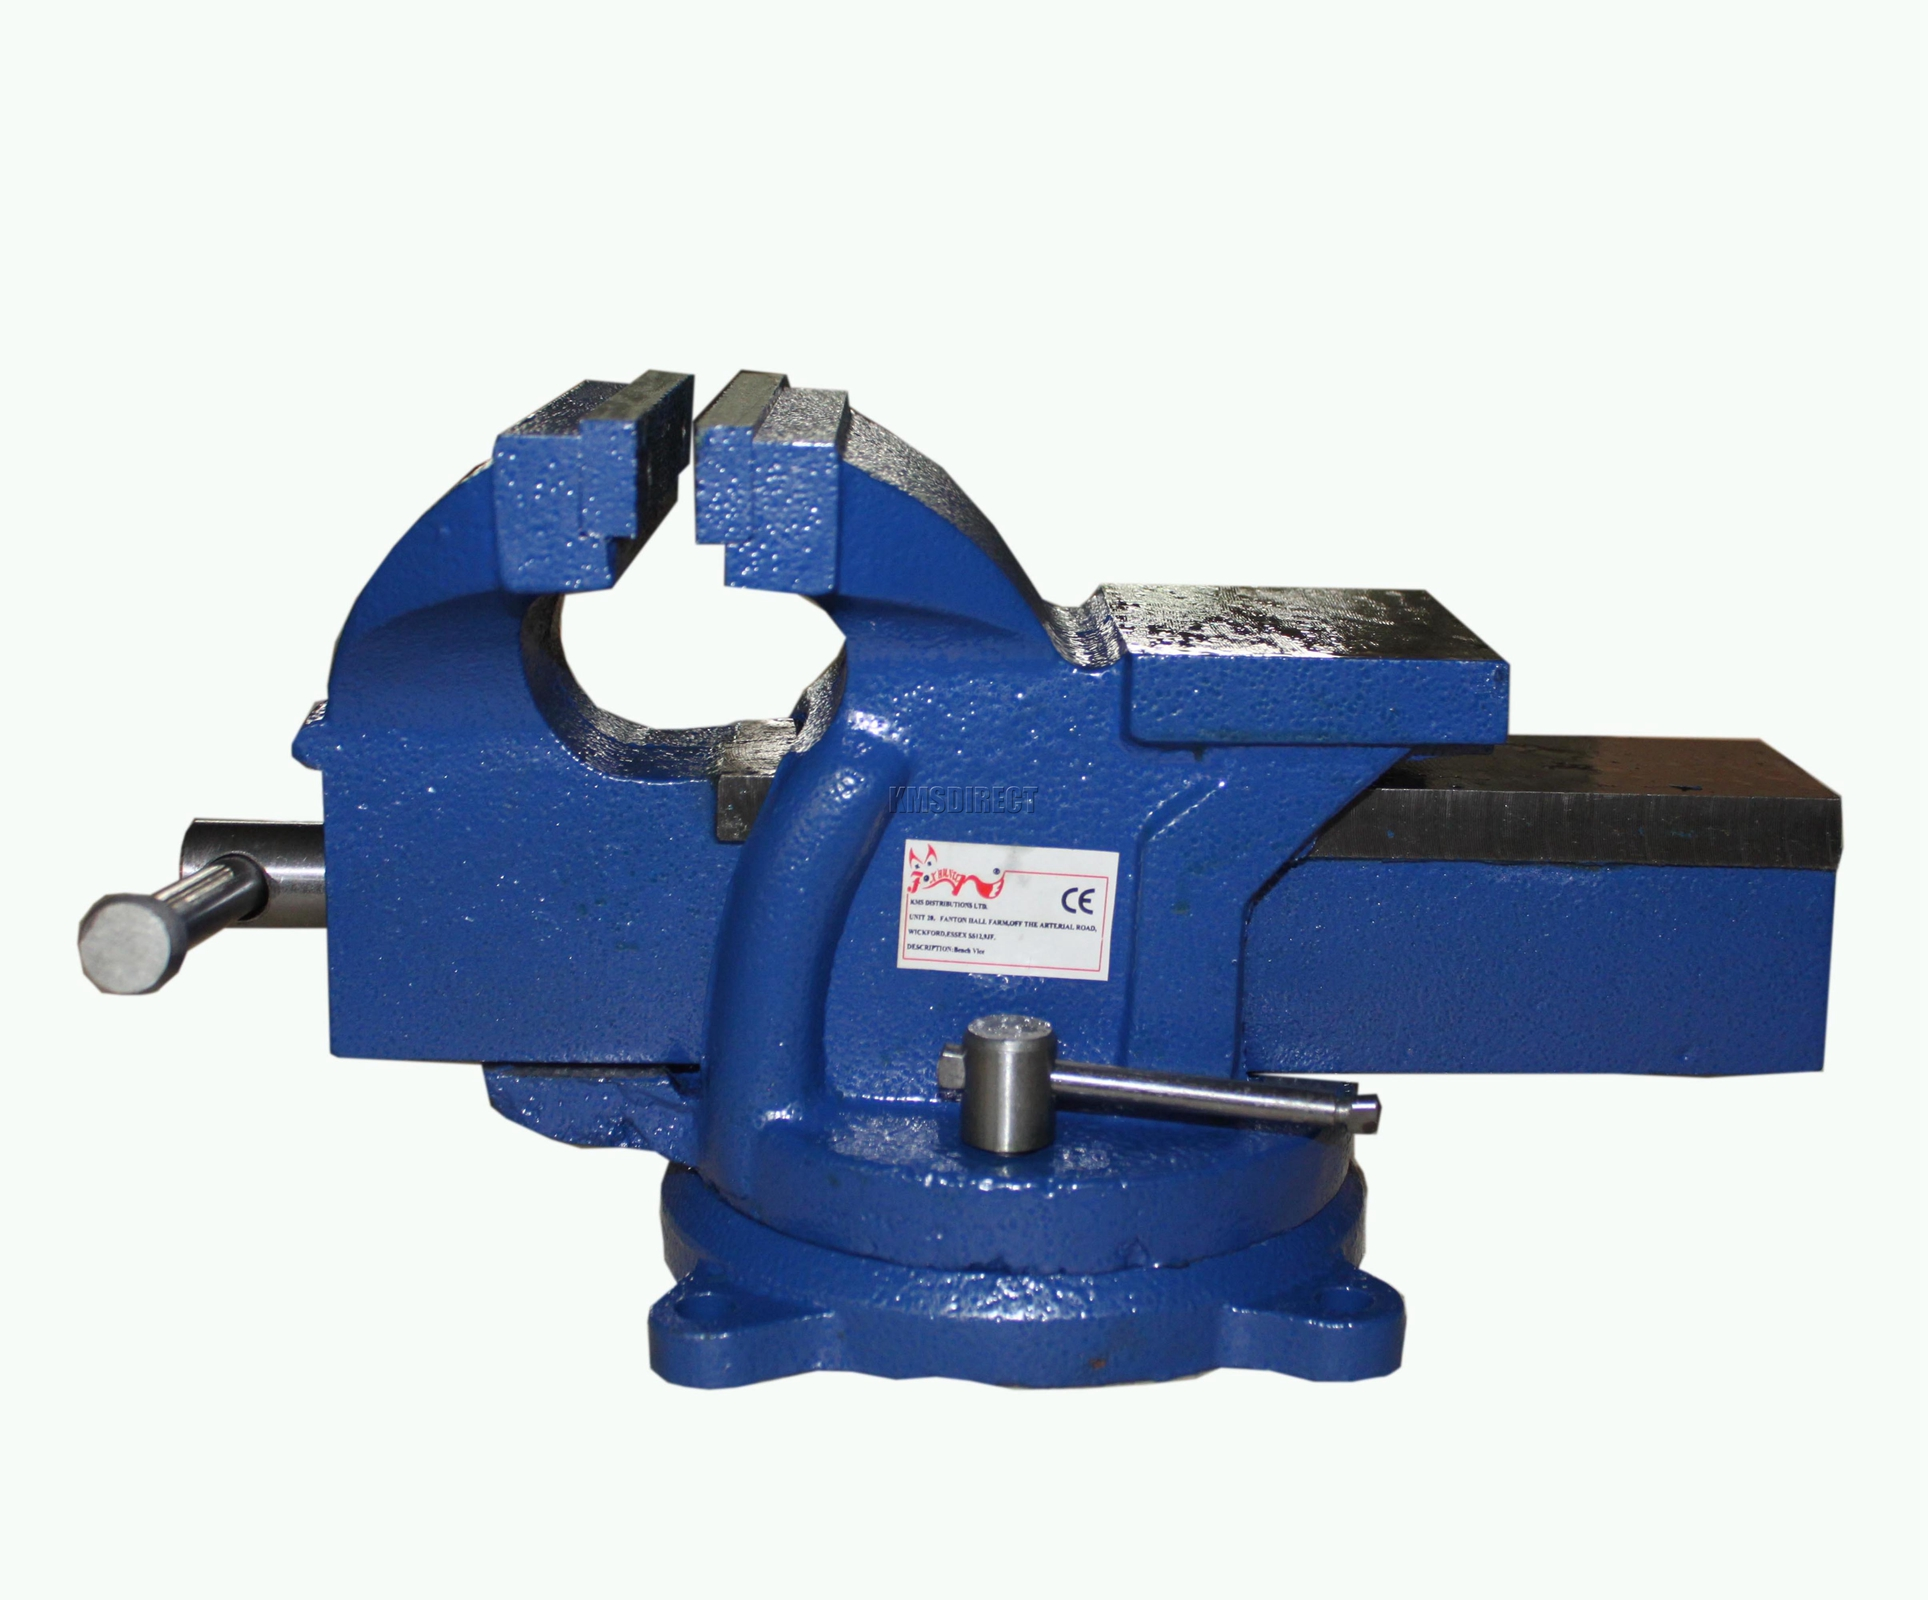 Foxhunter 4 Inch Bench Vice Vise 100mm Jaw Clamp Swivel